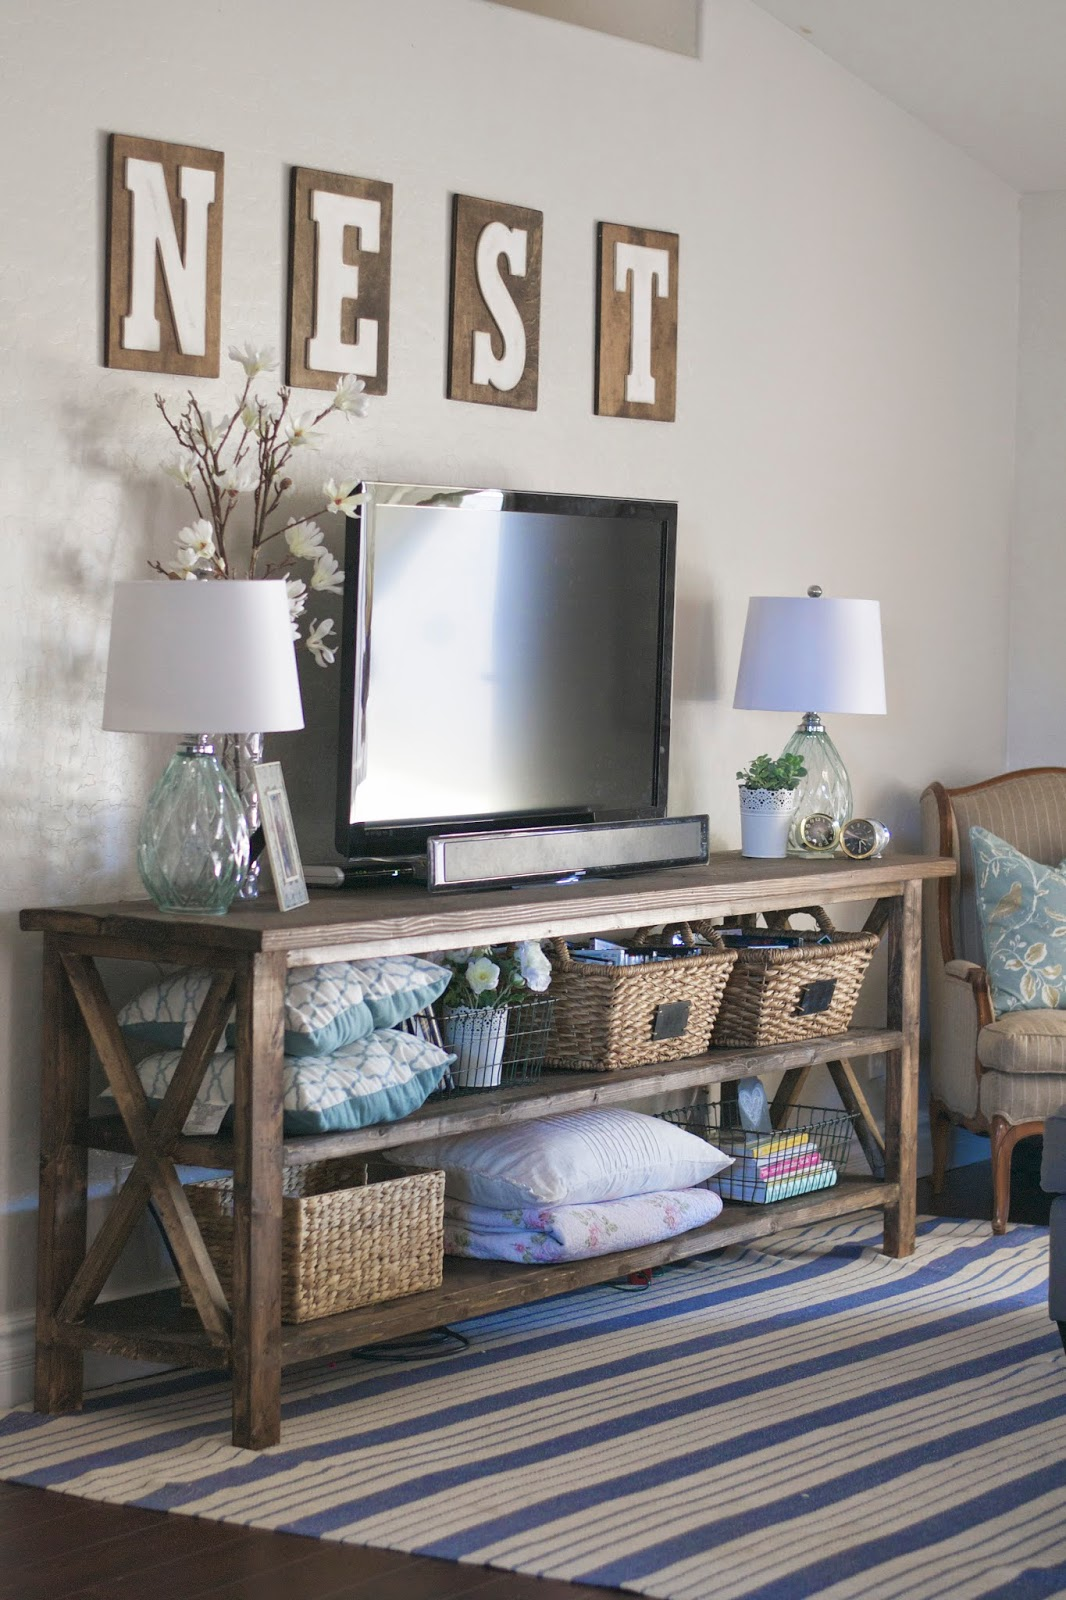 Tv Stand Decor Ideas Make A Jewelry Holder From A Cutlery Tray The Diy Mommy